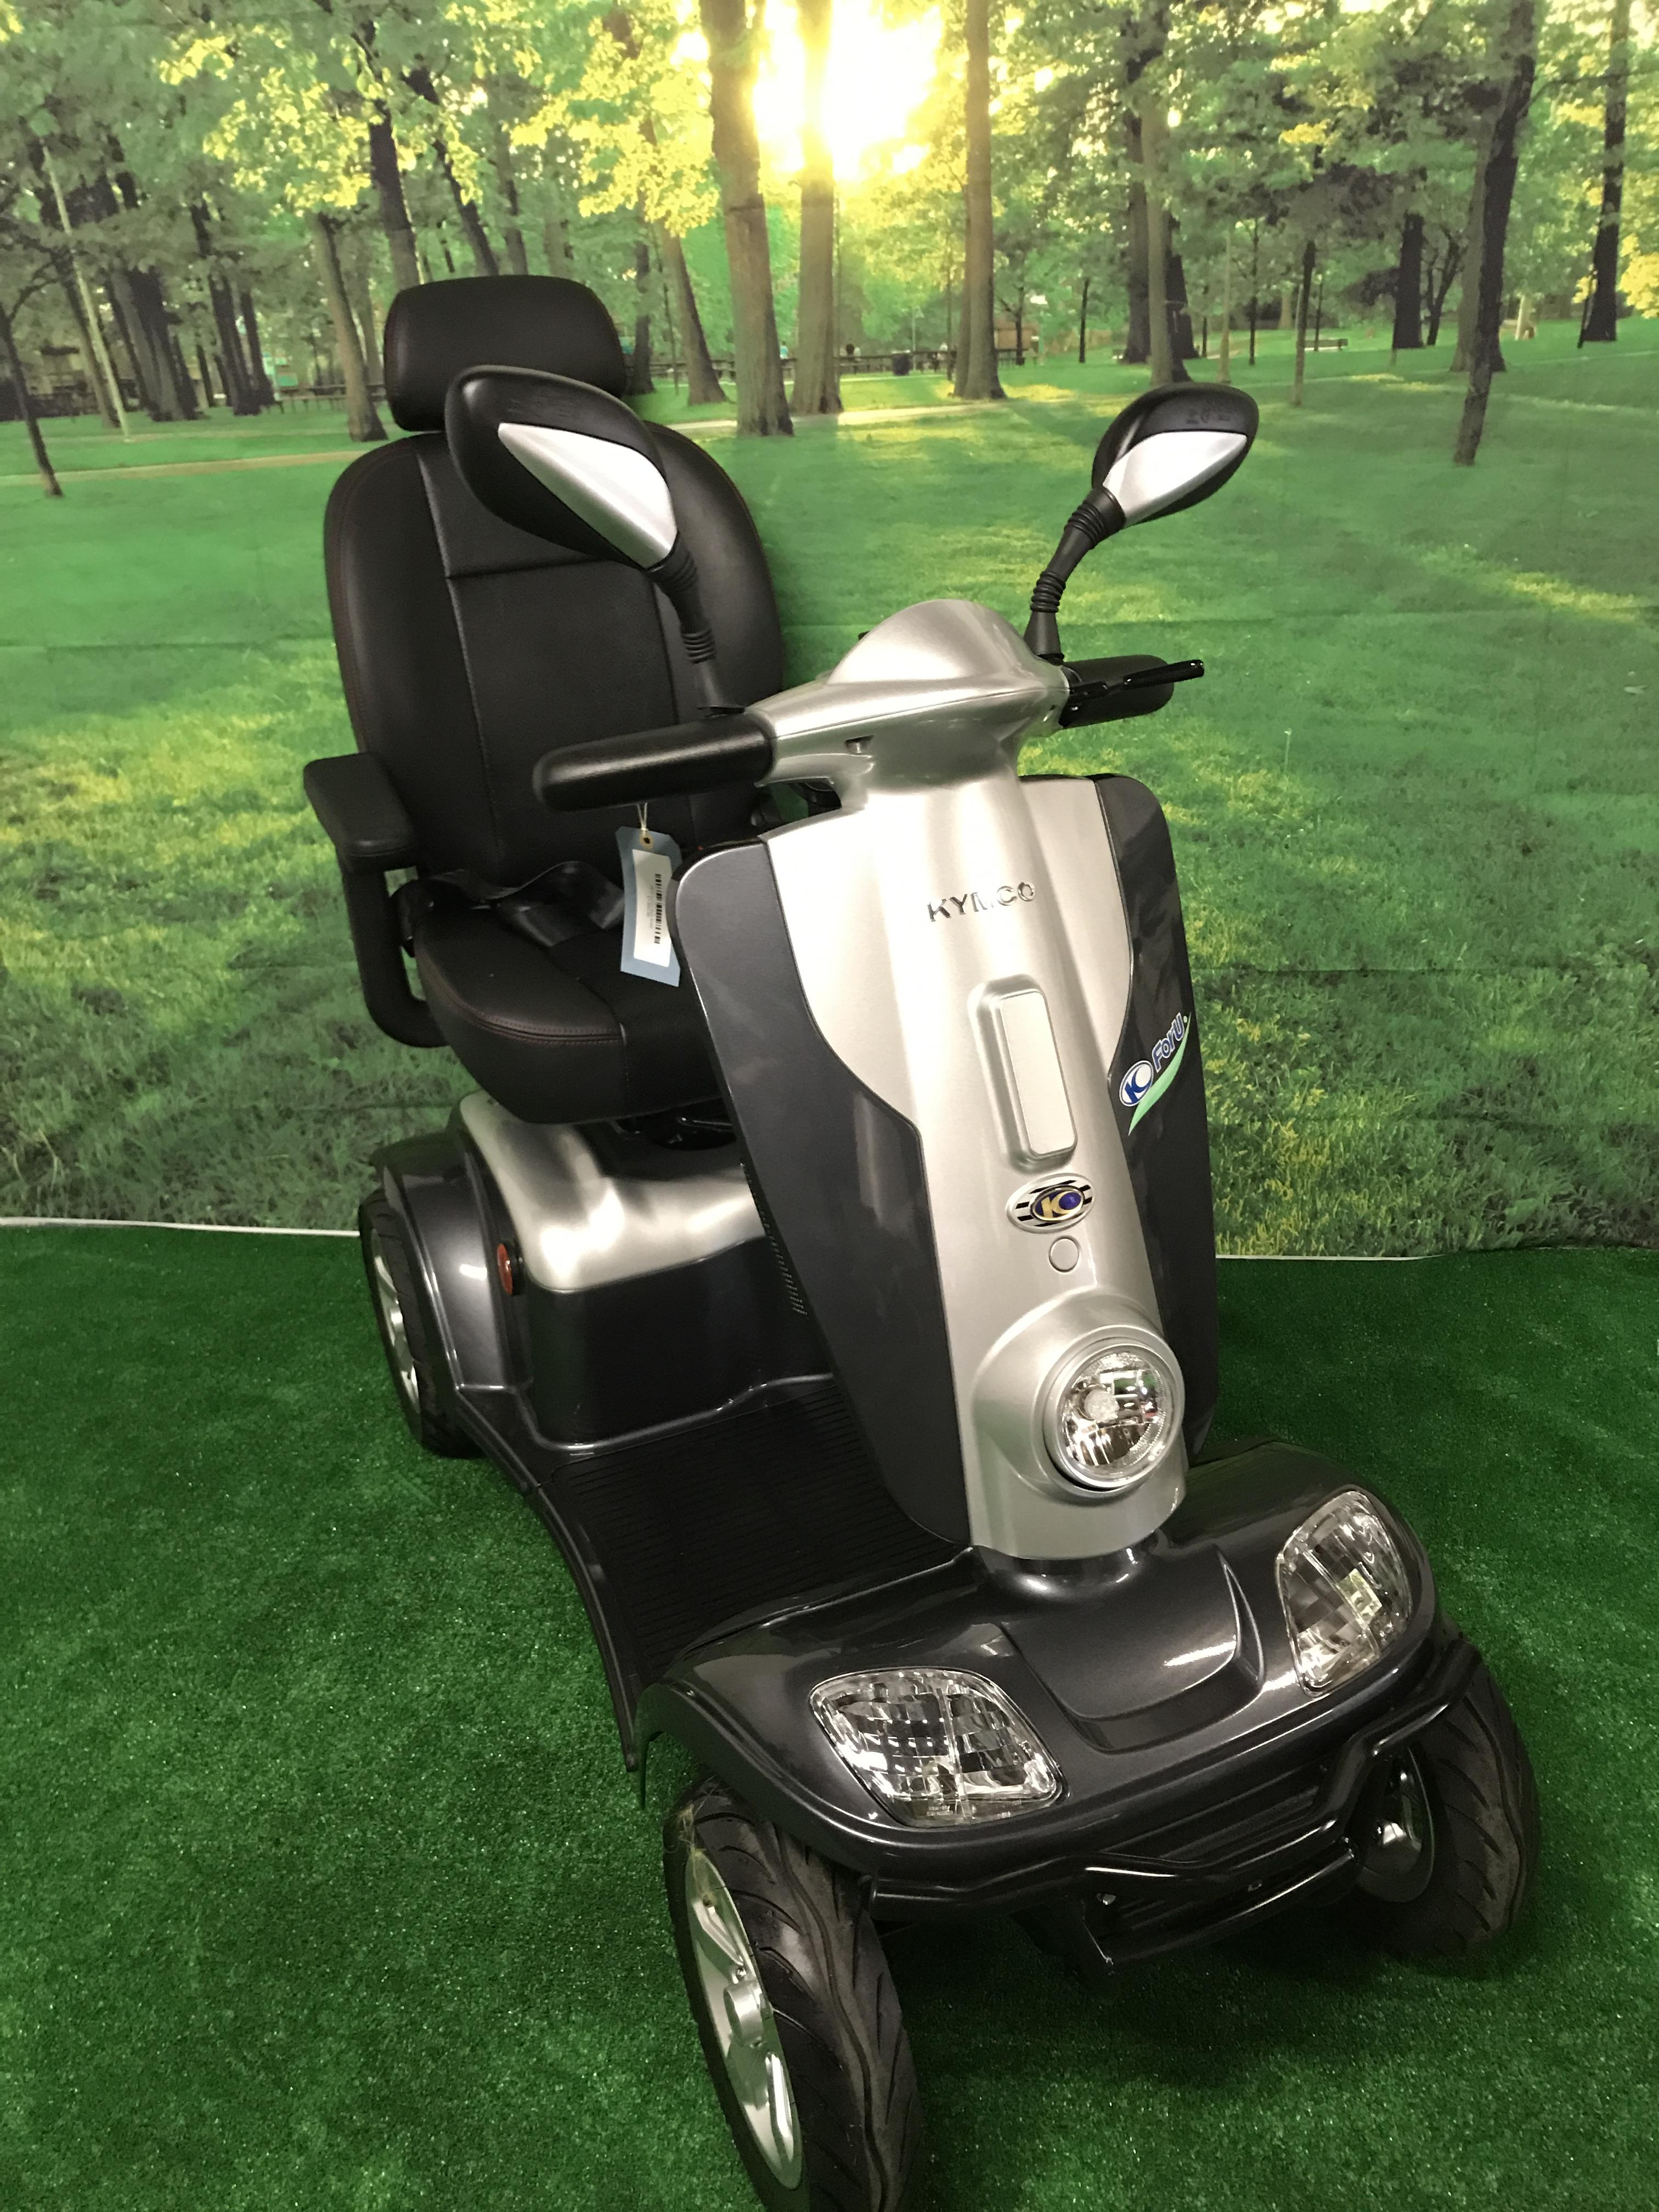 stunning 2016 kymco maxi 8mph mobility scooter large scooter in grey ebay. Black Bedroom Furniture Sets. Home Design Ideas